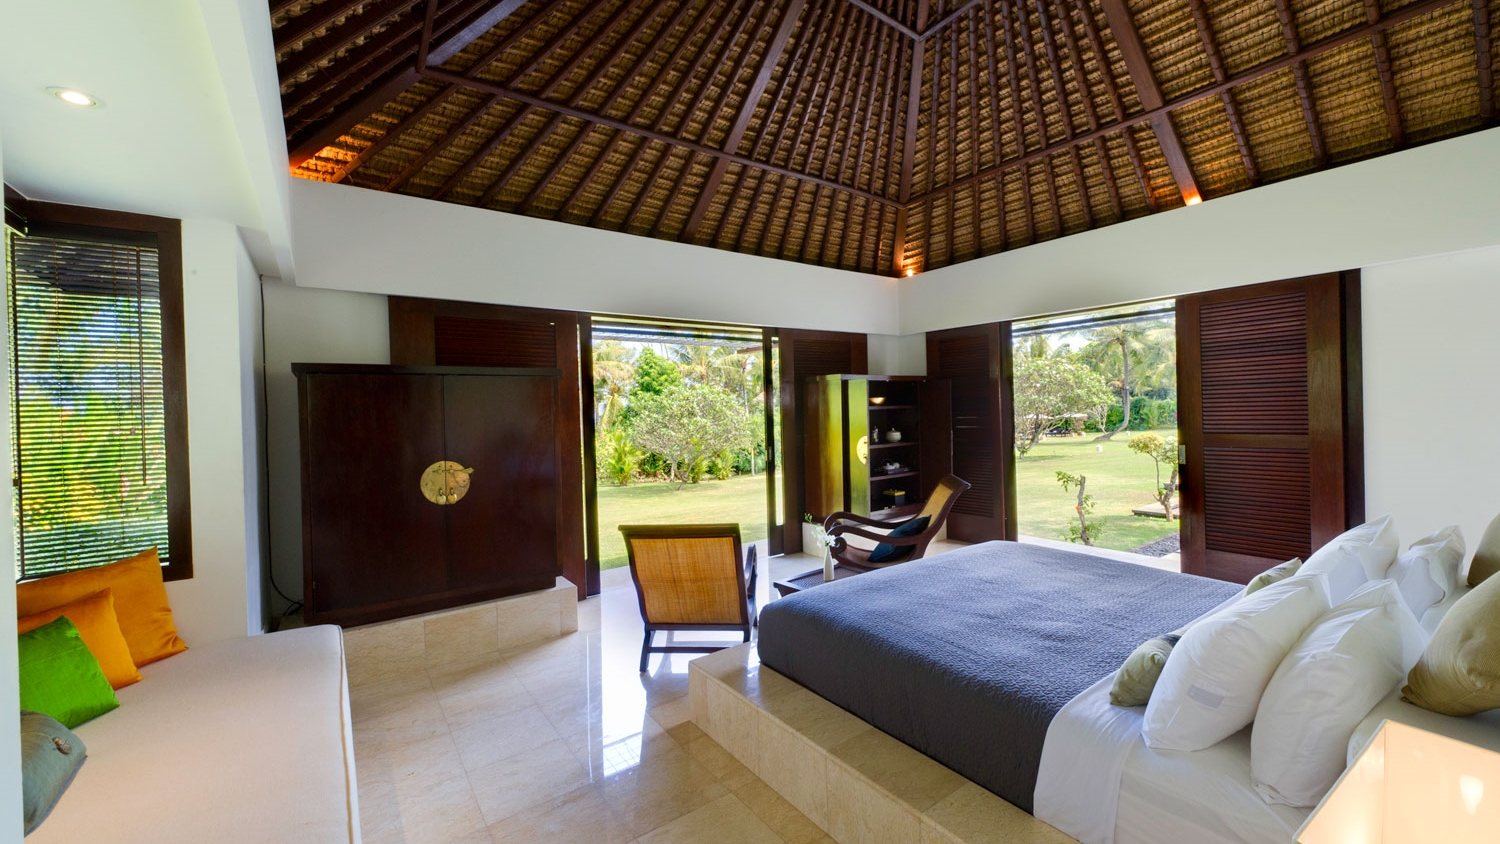 Bedroom with Seating Area and View - Villa Kailasha - Tabanan, Bali